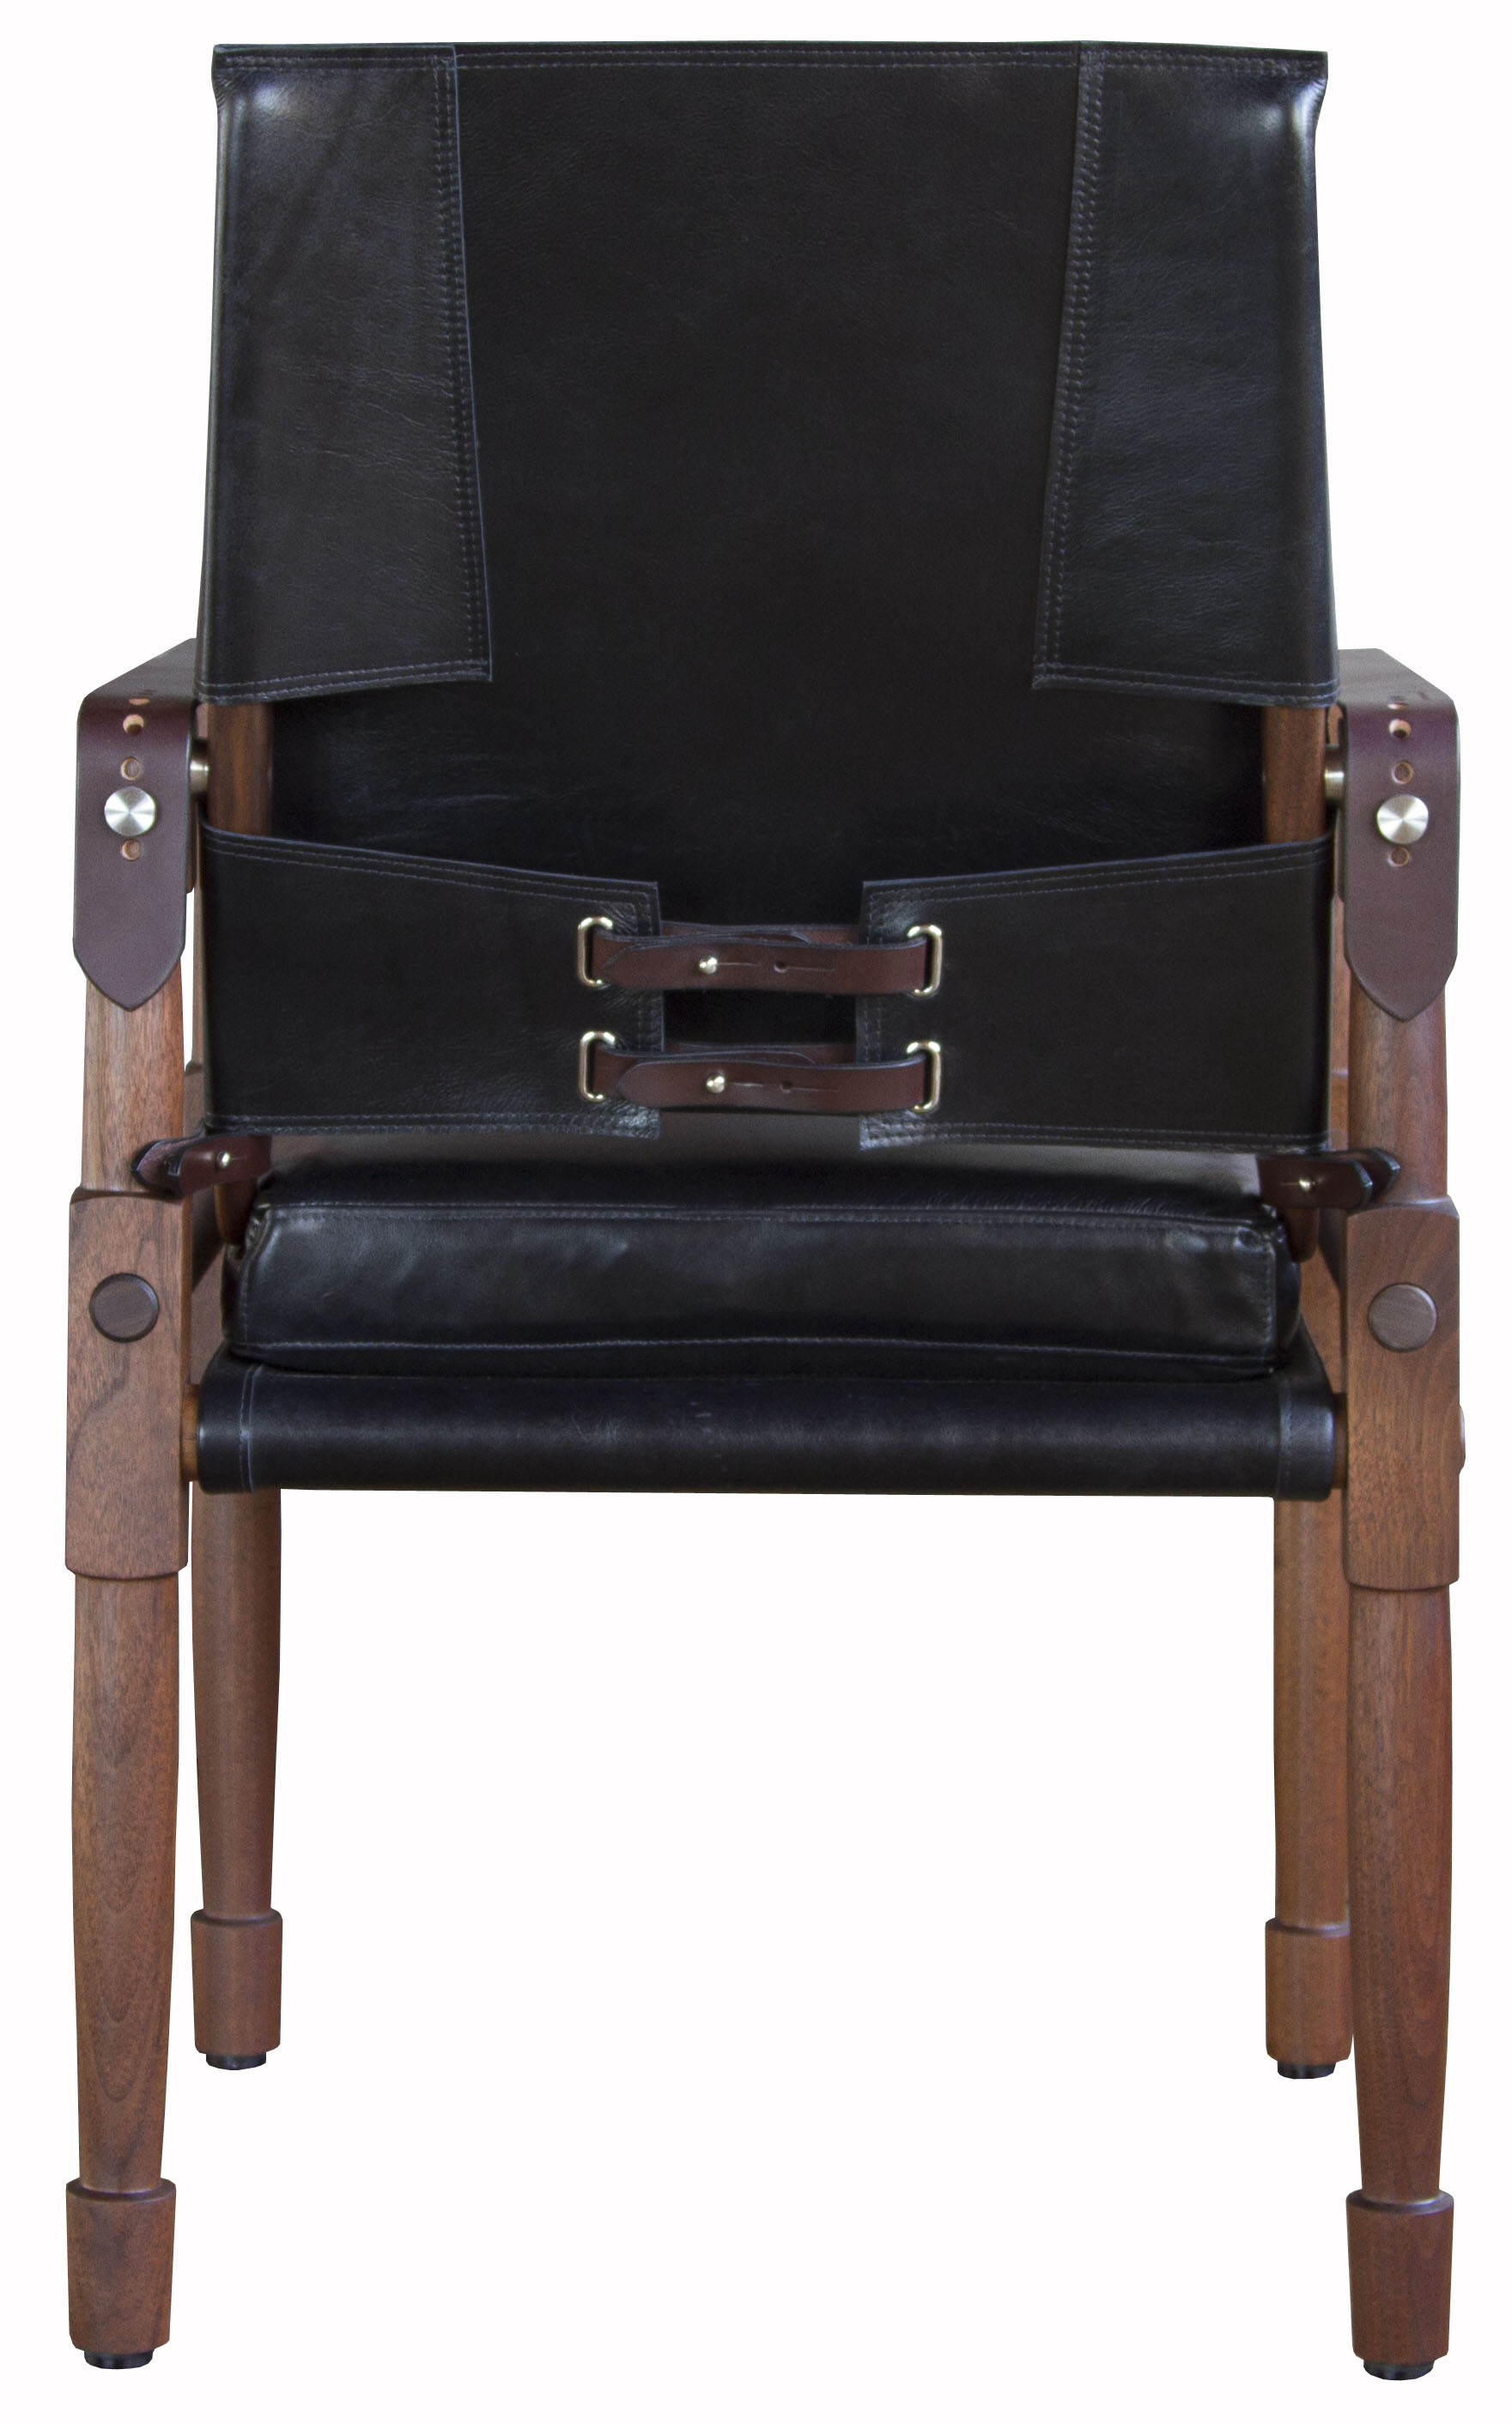 Oiled walnut with Moore & Giles Notting Hill: black and havana English bridle leather straps  11